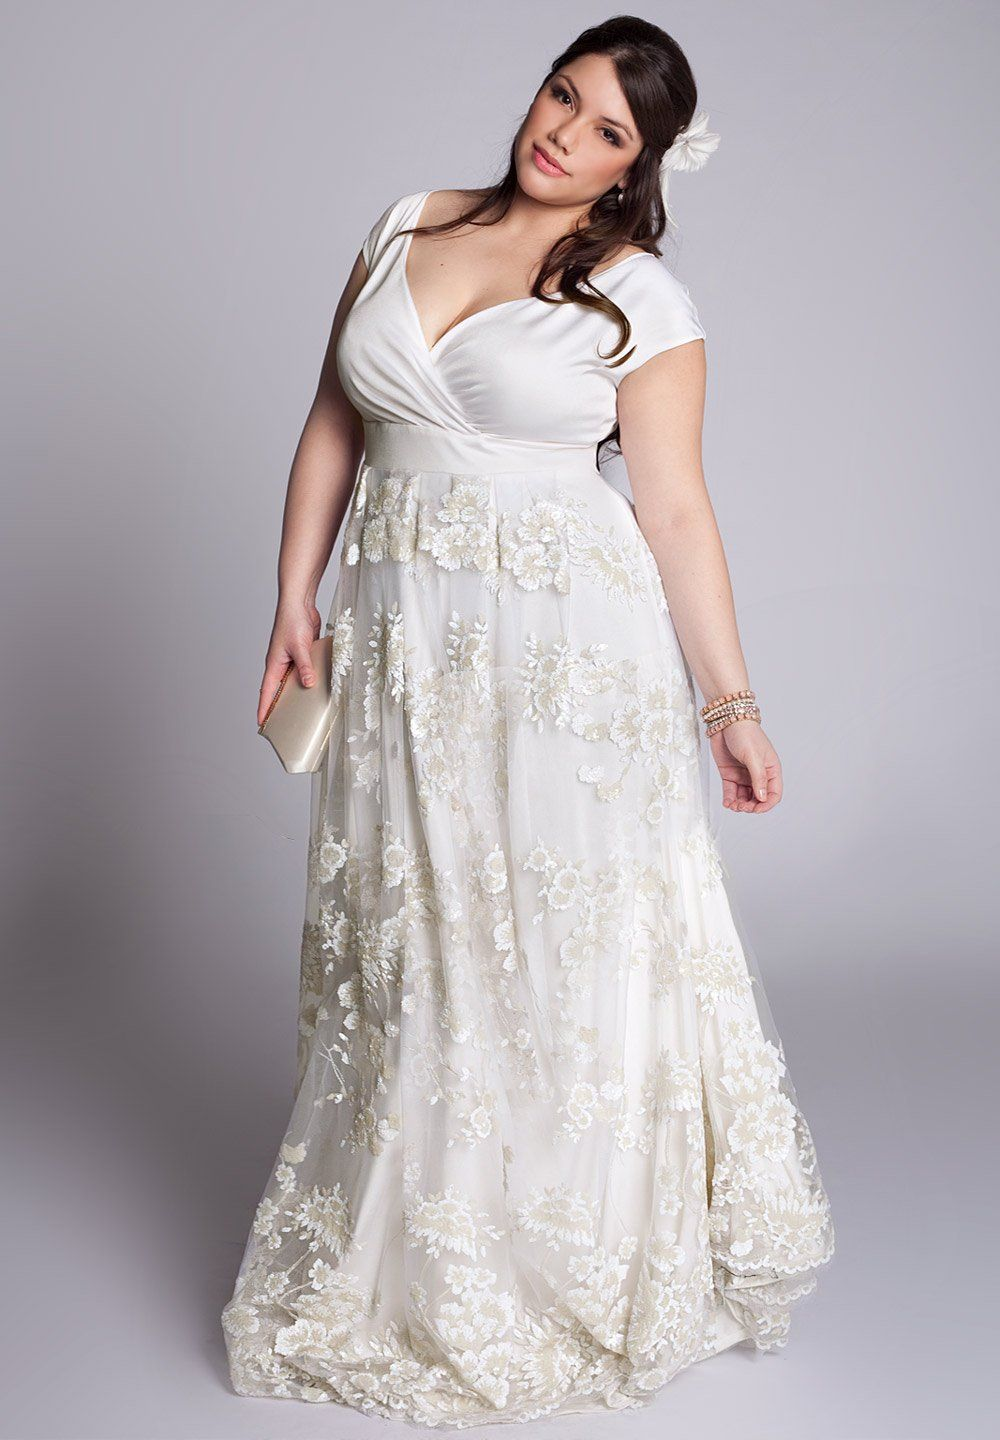 Eugenia Wedding Gown In Ivory Made To Order Plus Size Wedding Gowns Casual Wedding Dress Jcpenney Wedding Dresses [ 1440 x 1000 Pixel ]